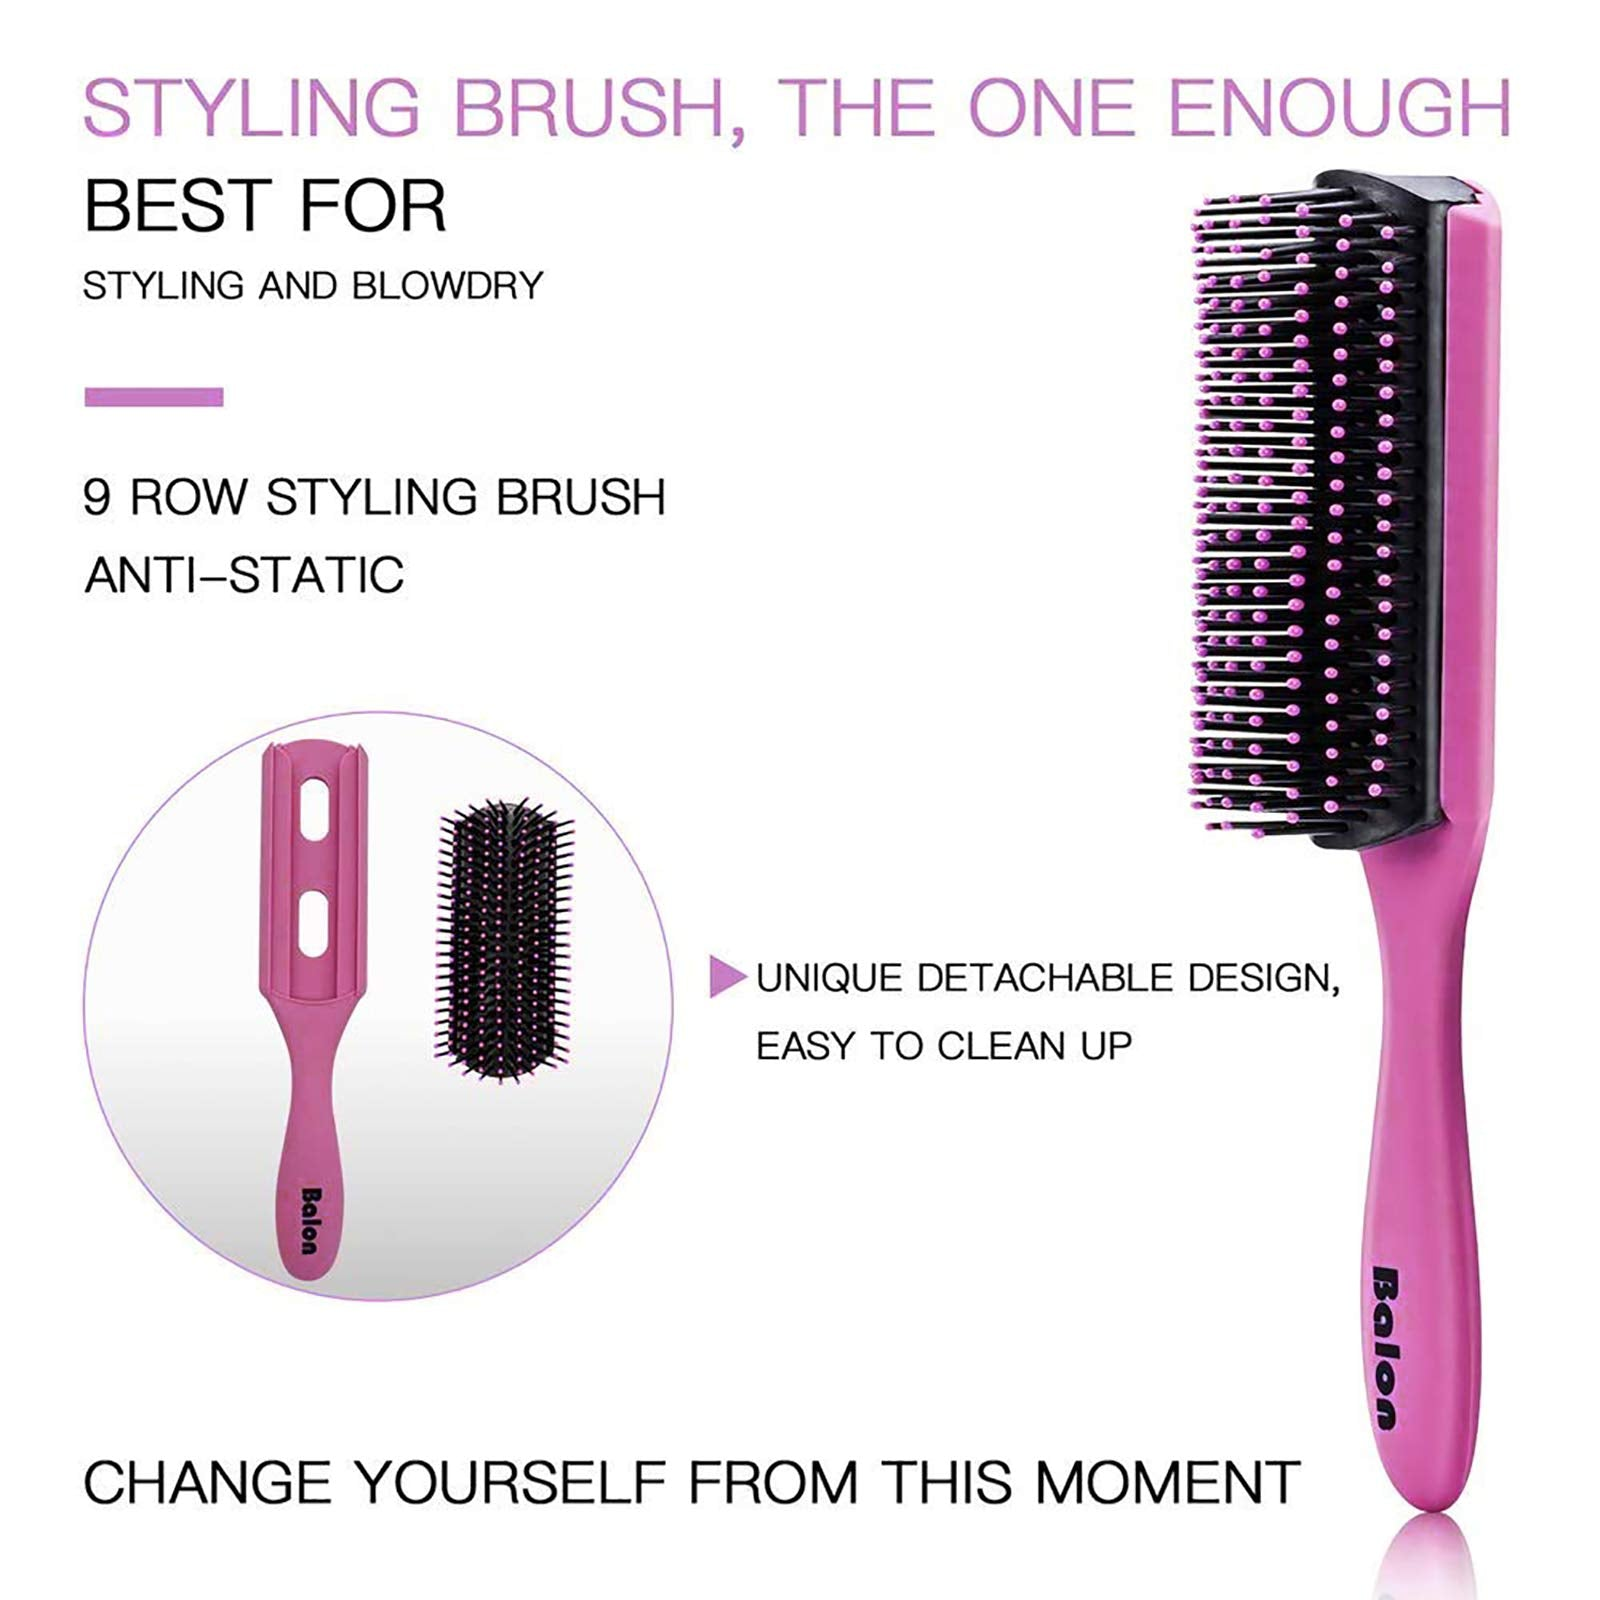 4Pcs Hair Brushes for Women, Hair Comb for Women and Detangling Paddle Brush, Great On Wet or Dry Hair, No More Tangle Hair Brush Set for Straight Long Thick Curly Natural Hair (Pink)